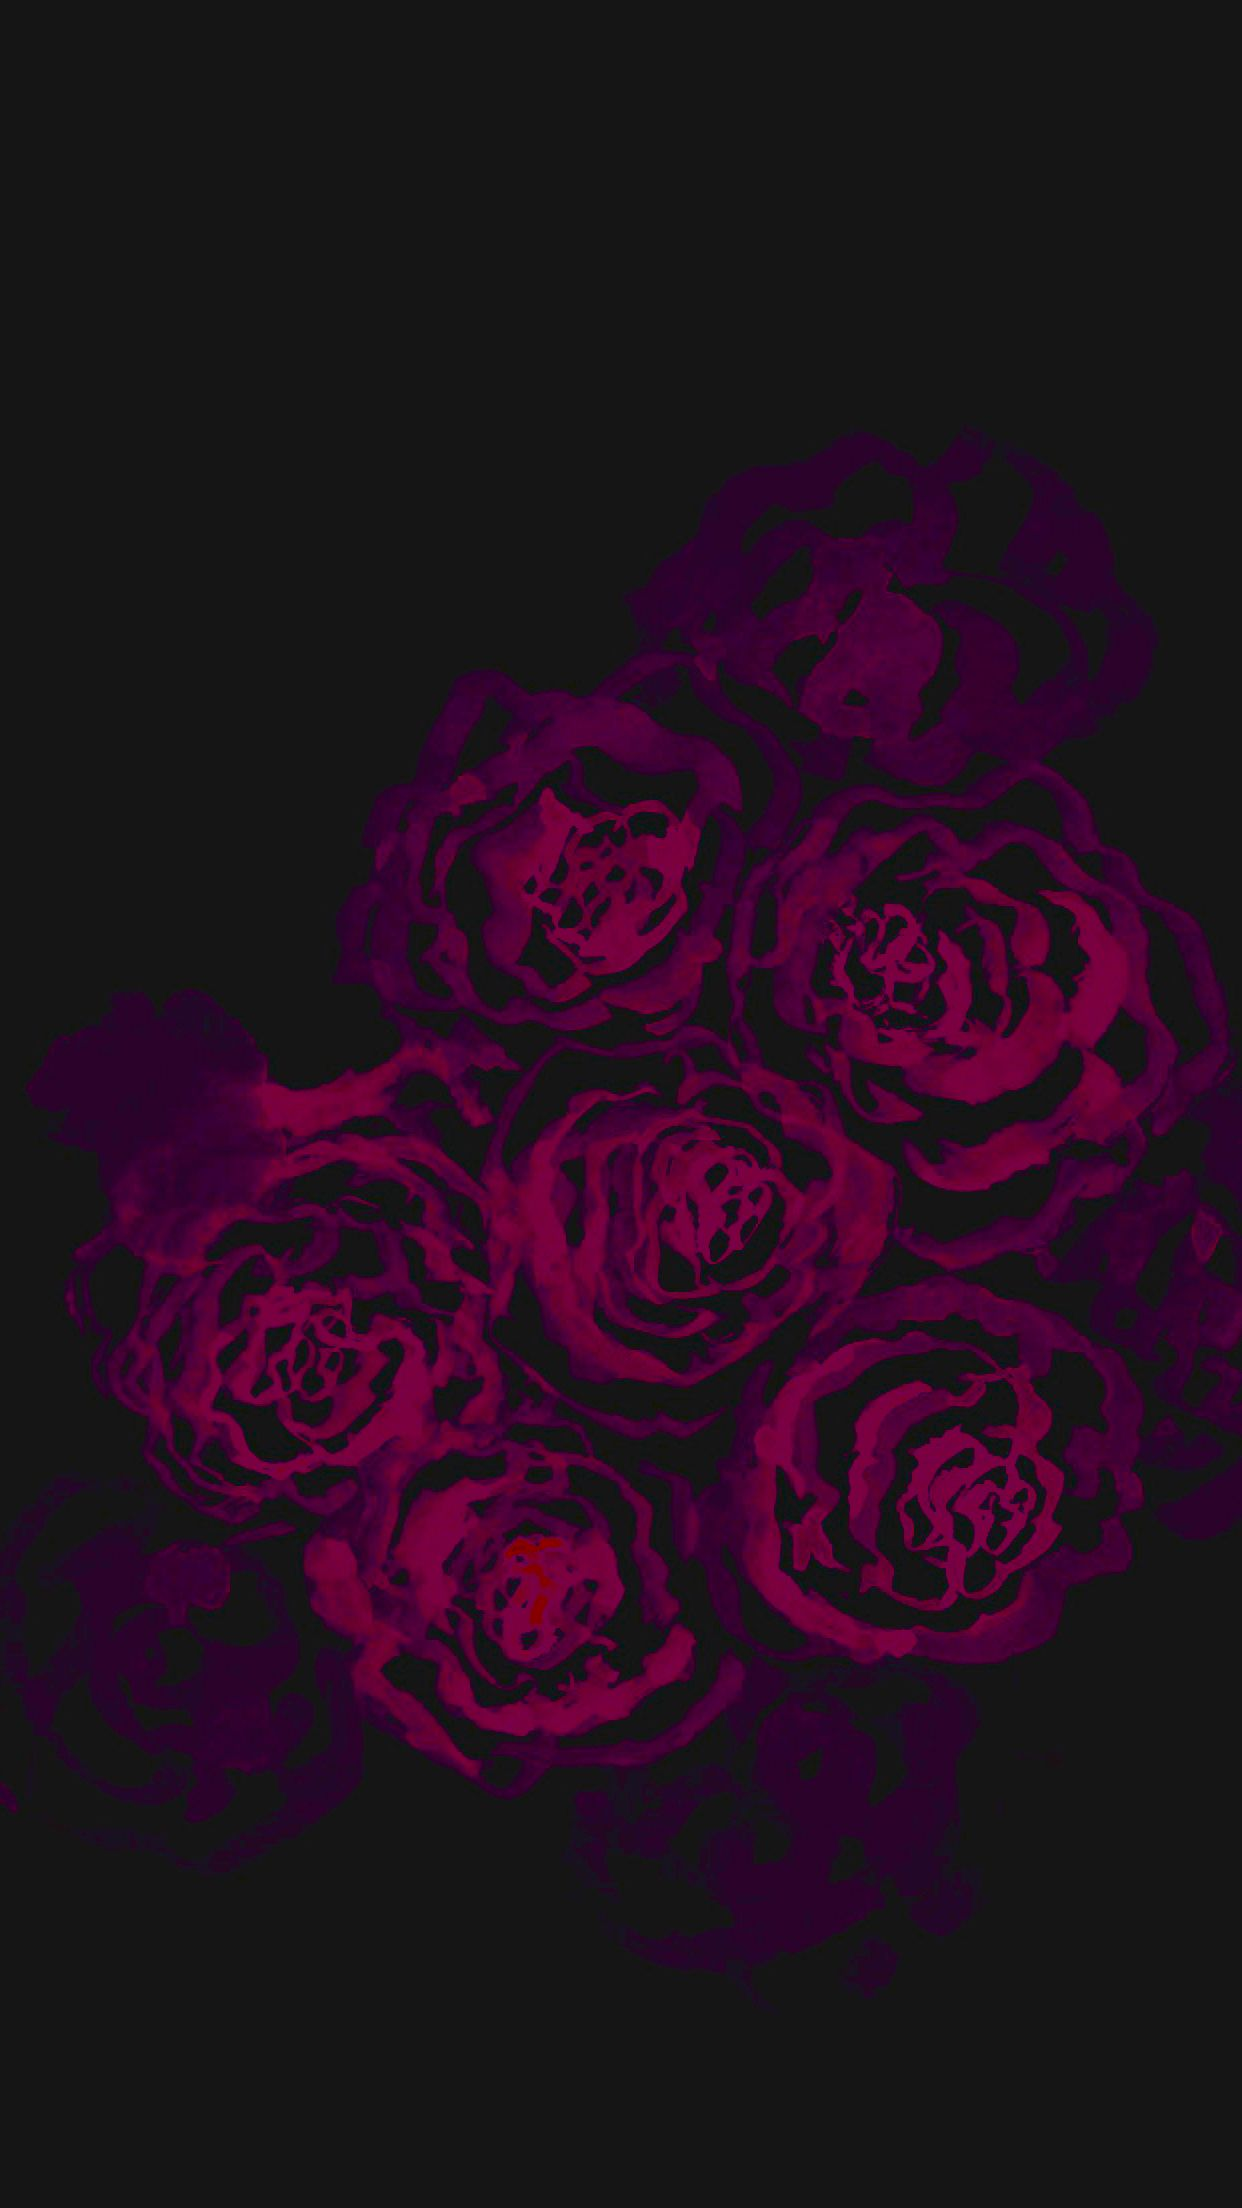 Black Rose Watercolor Iphone Wallpaper Panpins Wallpaper Iphone Roses Watercolor Wallpaper Iphone Watercolor Iphone